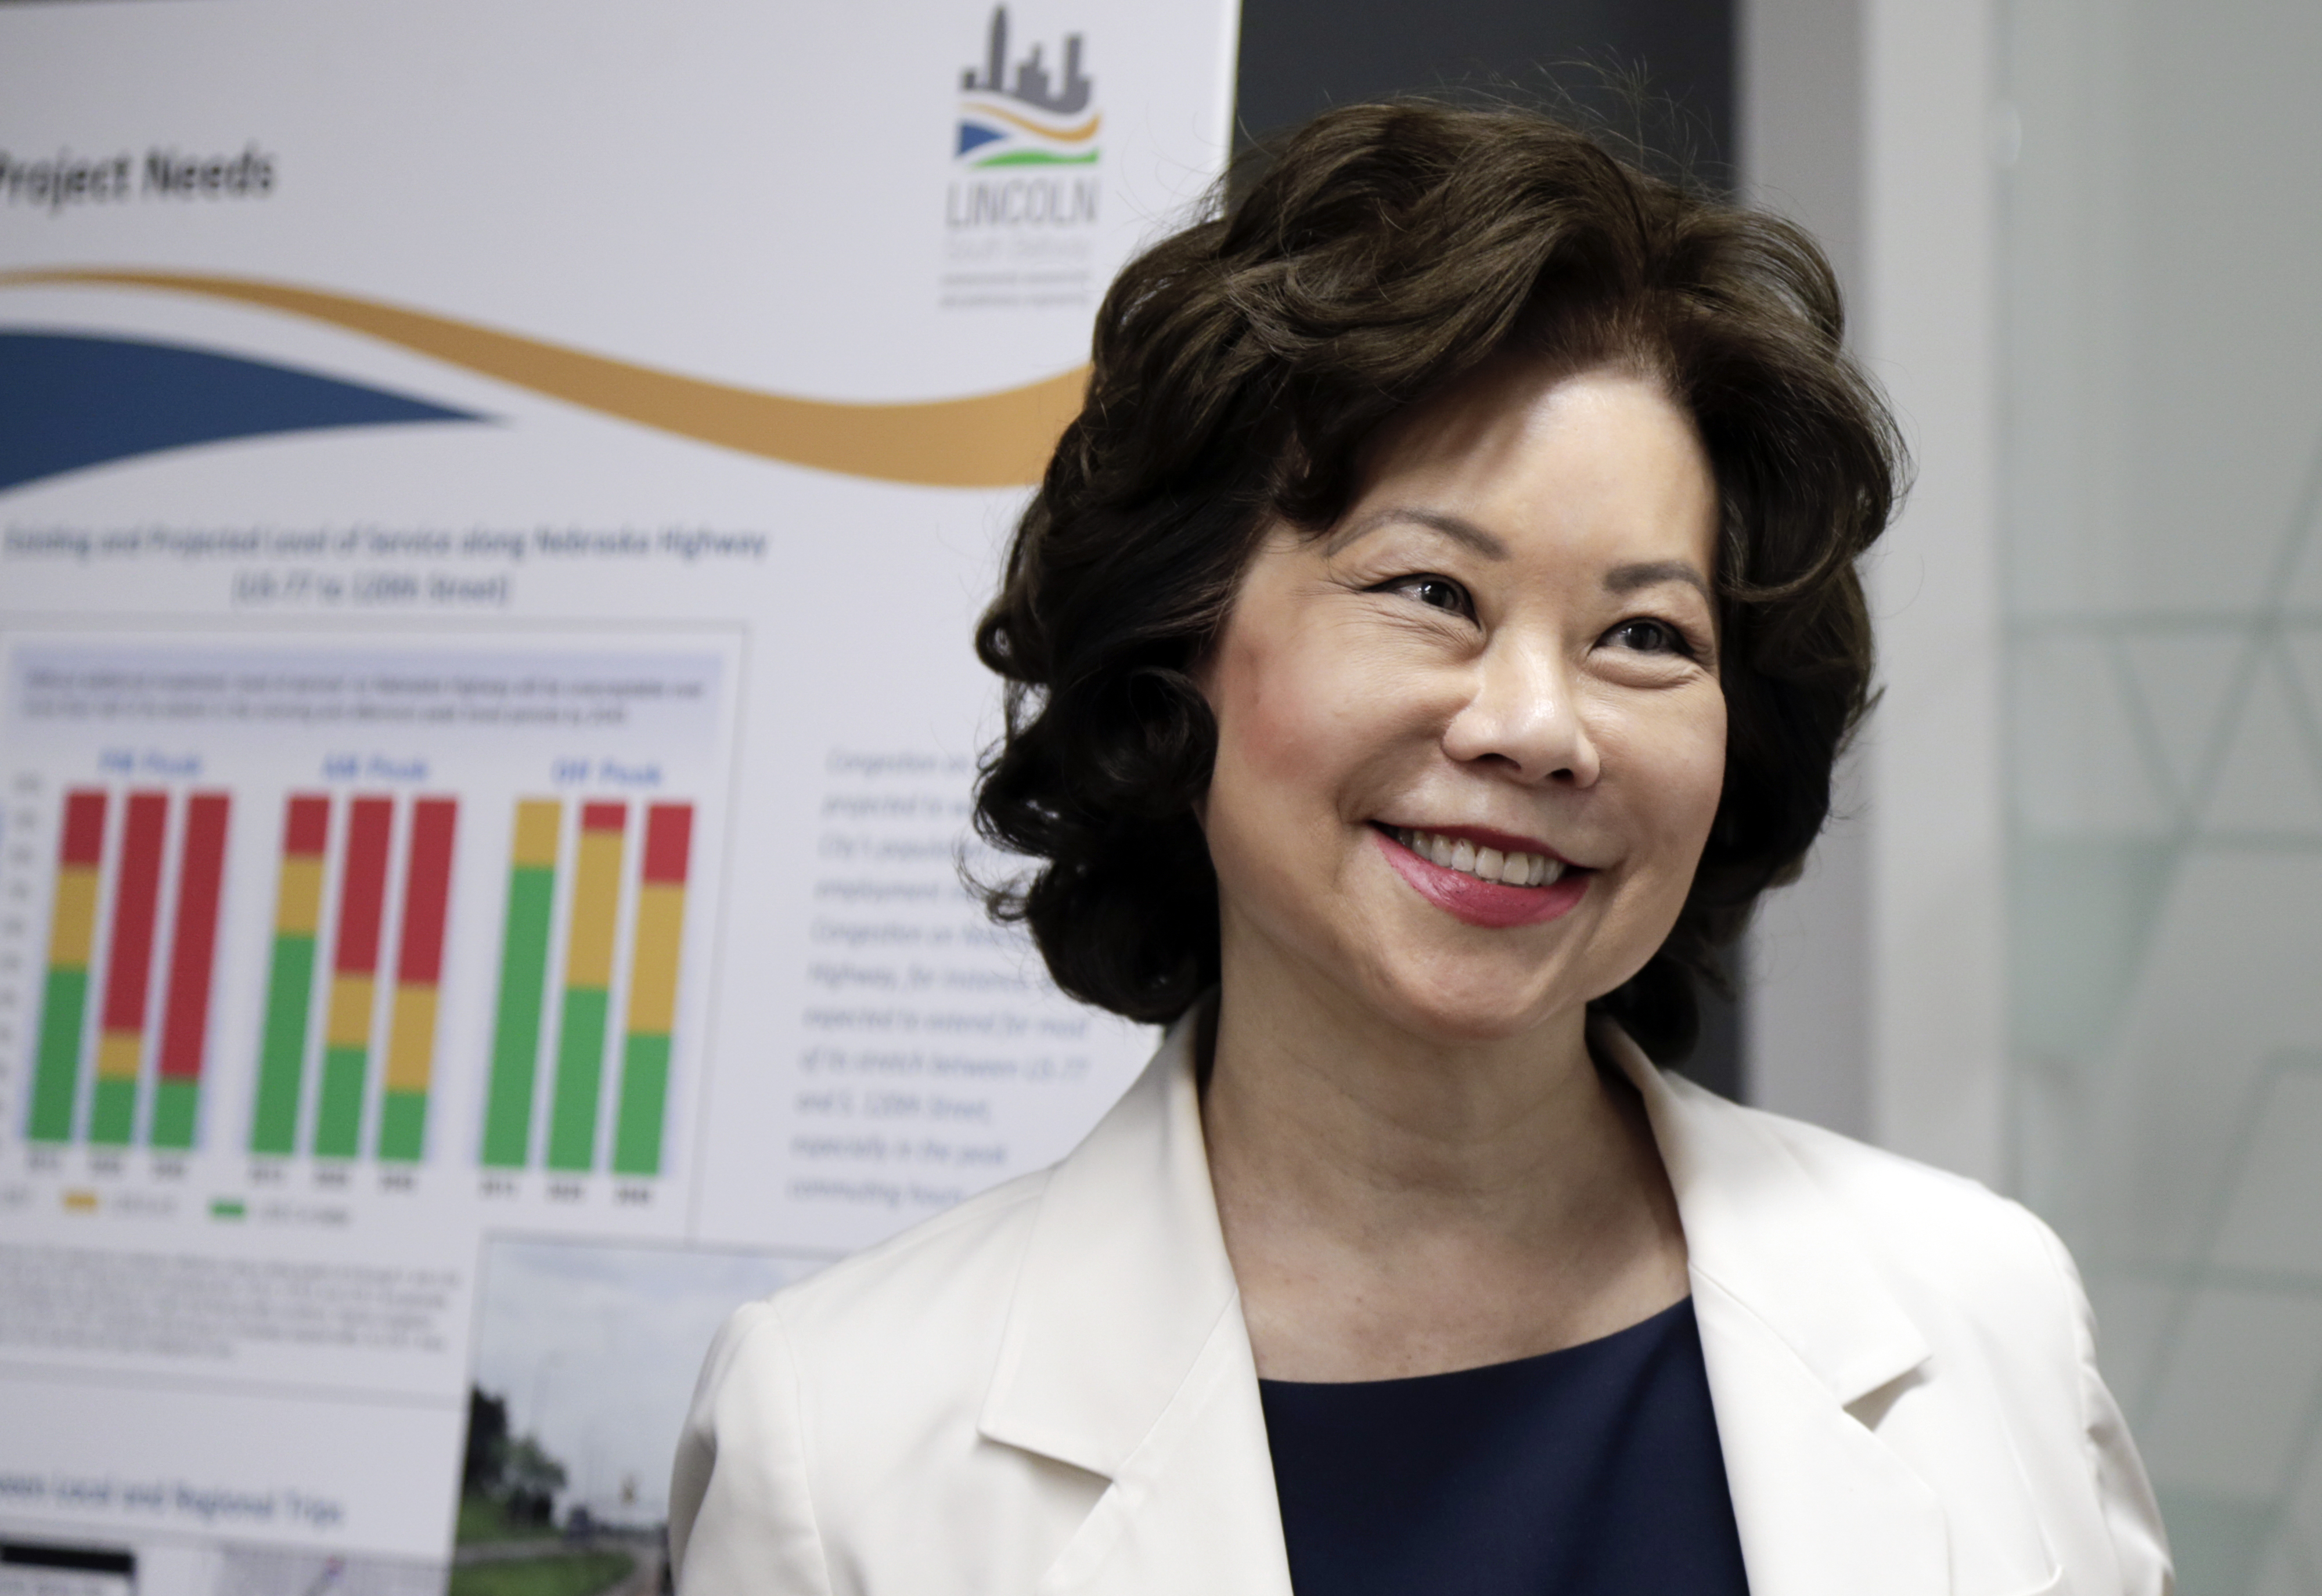 U.S. Transportation Secretary Elaine L. Chao smiles as she is briefed on the Lincoln, Neb., South Beltway Tiger Project, during a visit to Omaha, Neb.,  July 3, 2018.